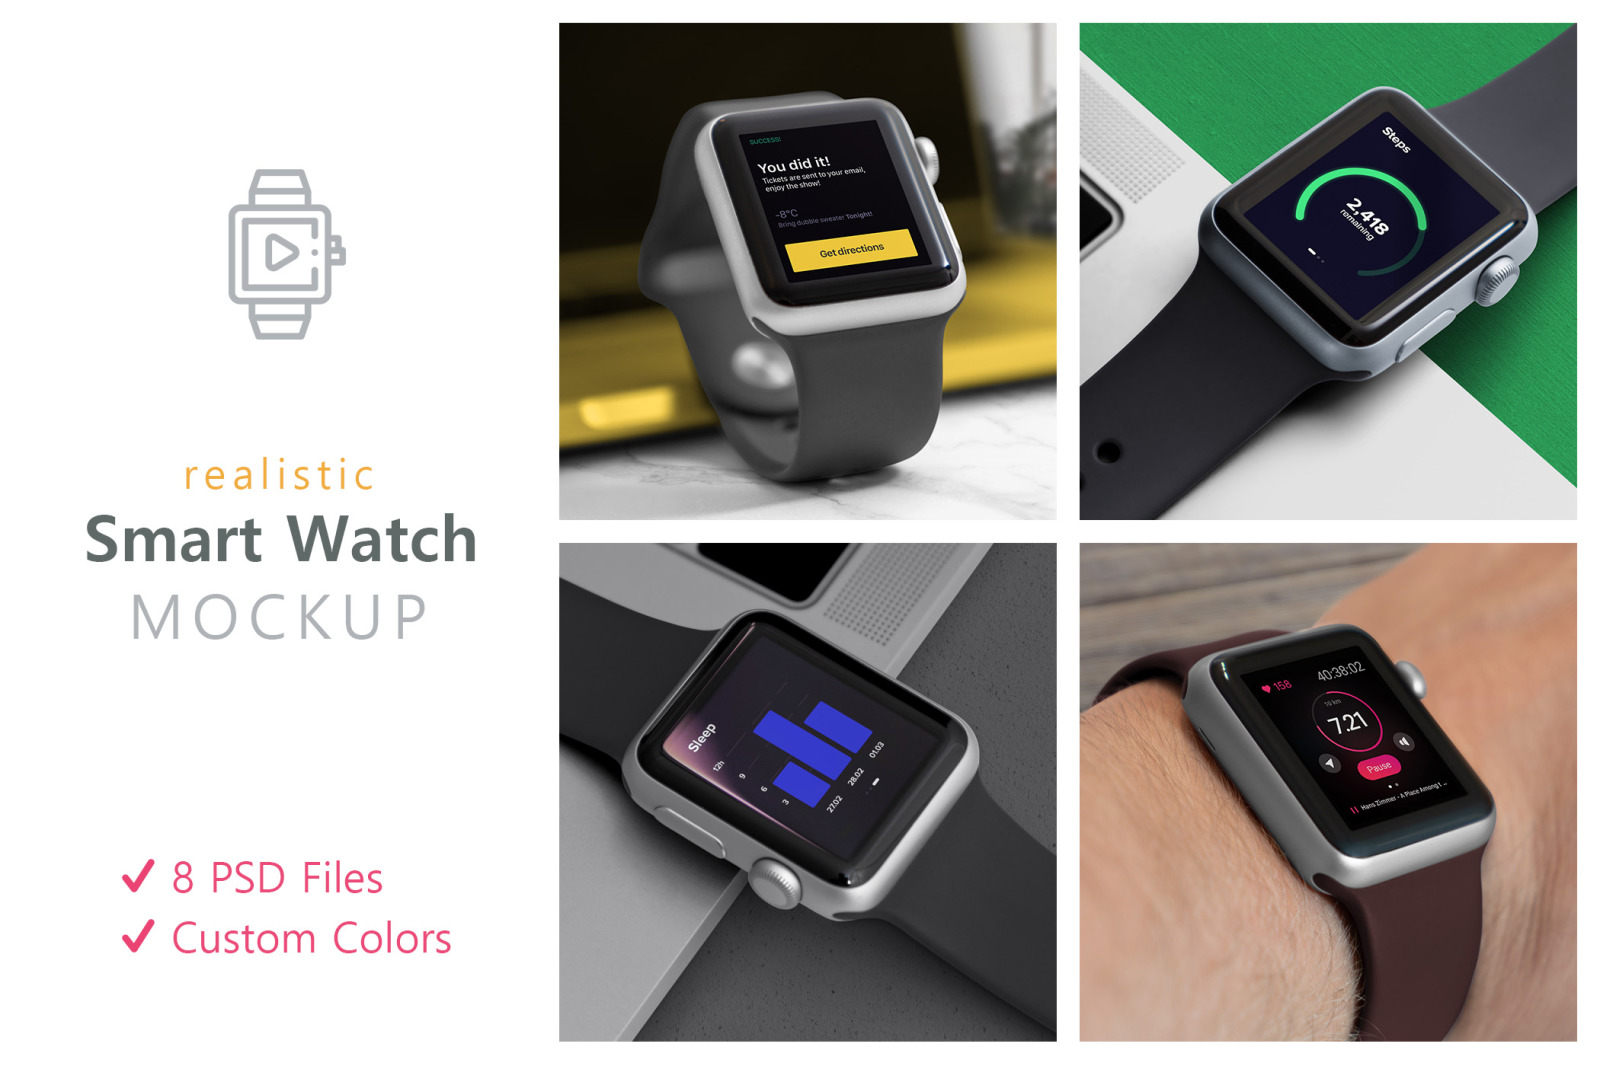 Download Realistic Smart Watch Mockups In Device Mockups On Yellow Images Creative Store PSD Mockup Templates